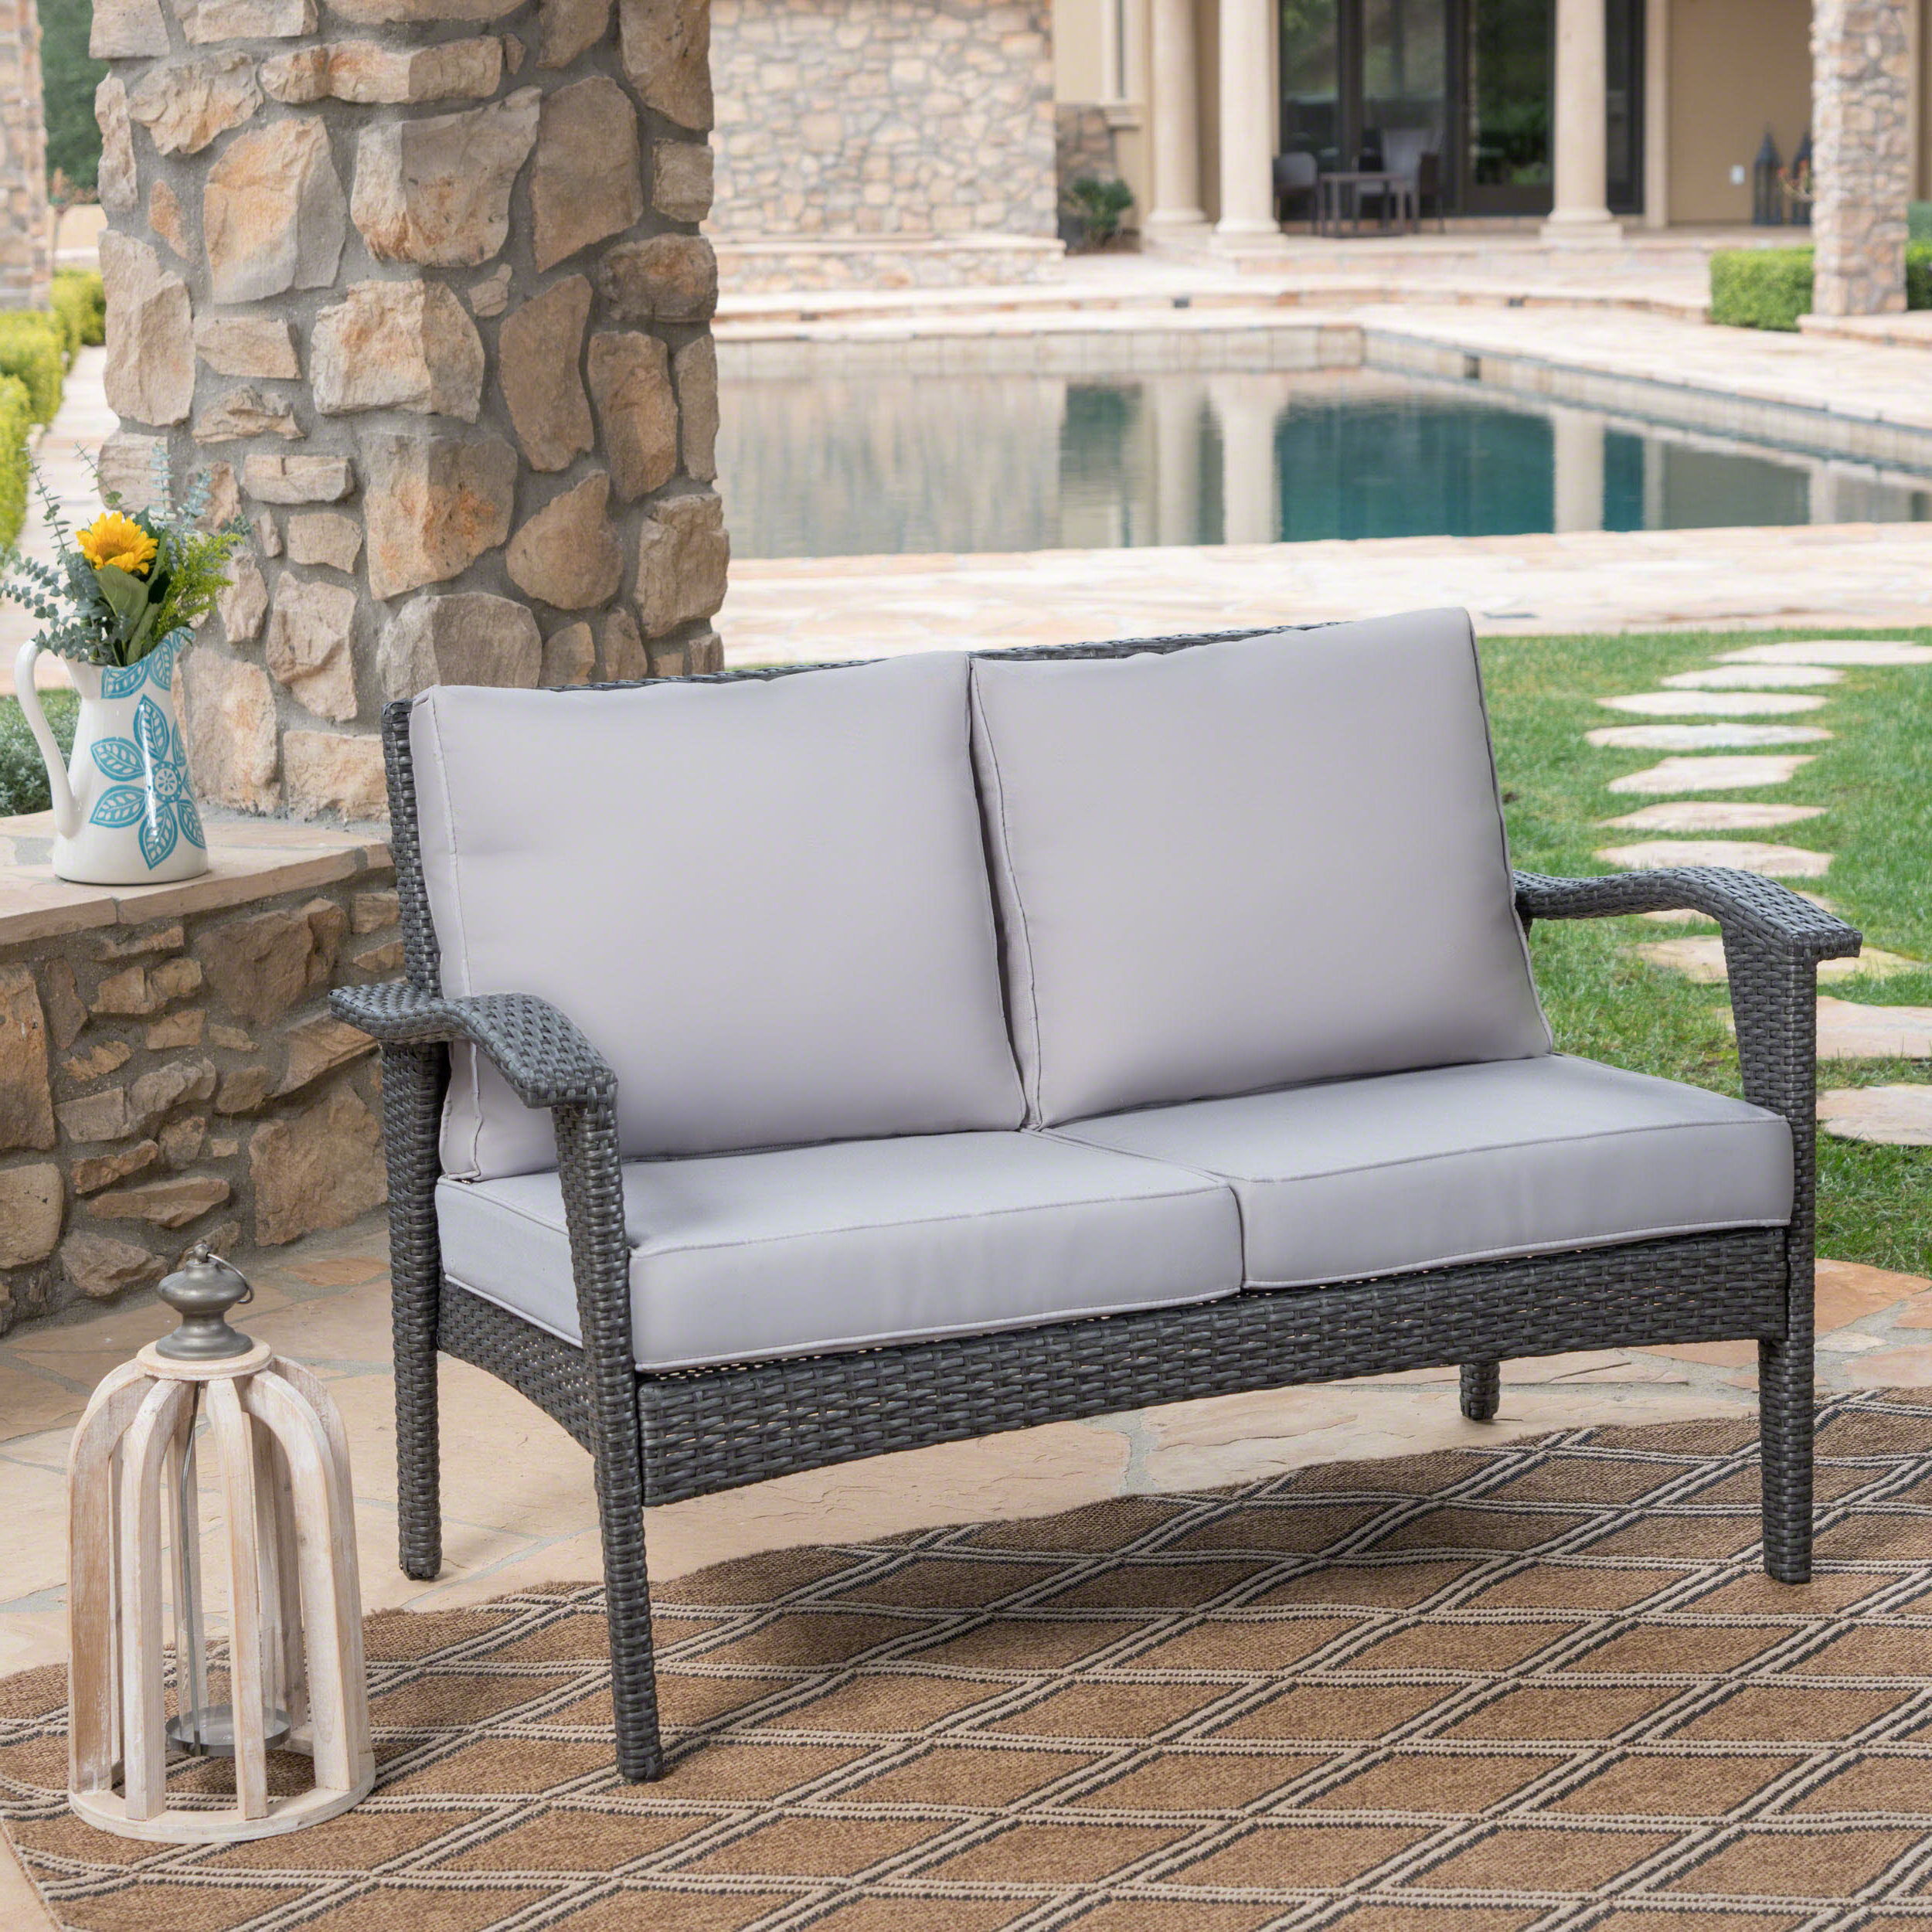 Laverton Loveseats With Cushions In Fashionable Hagler Outdoor Loveseat With Cushions (View 9 of 20)